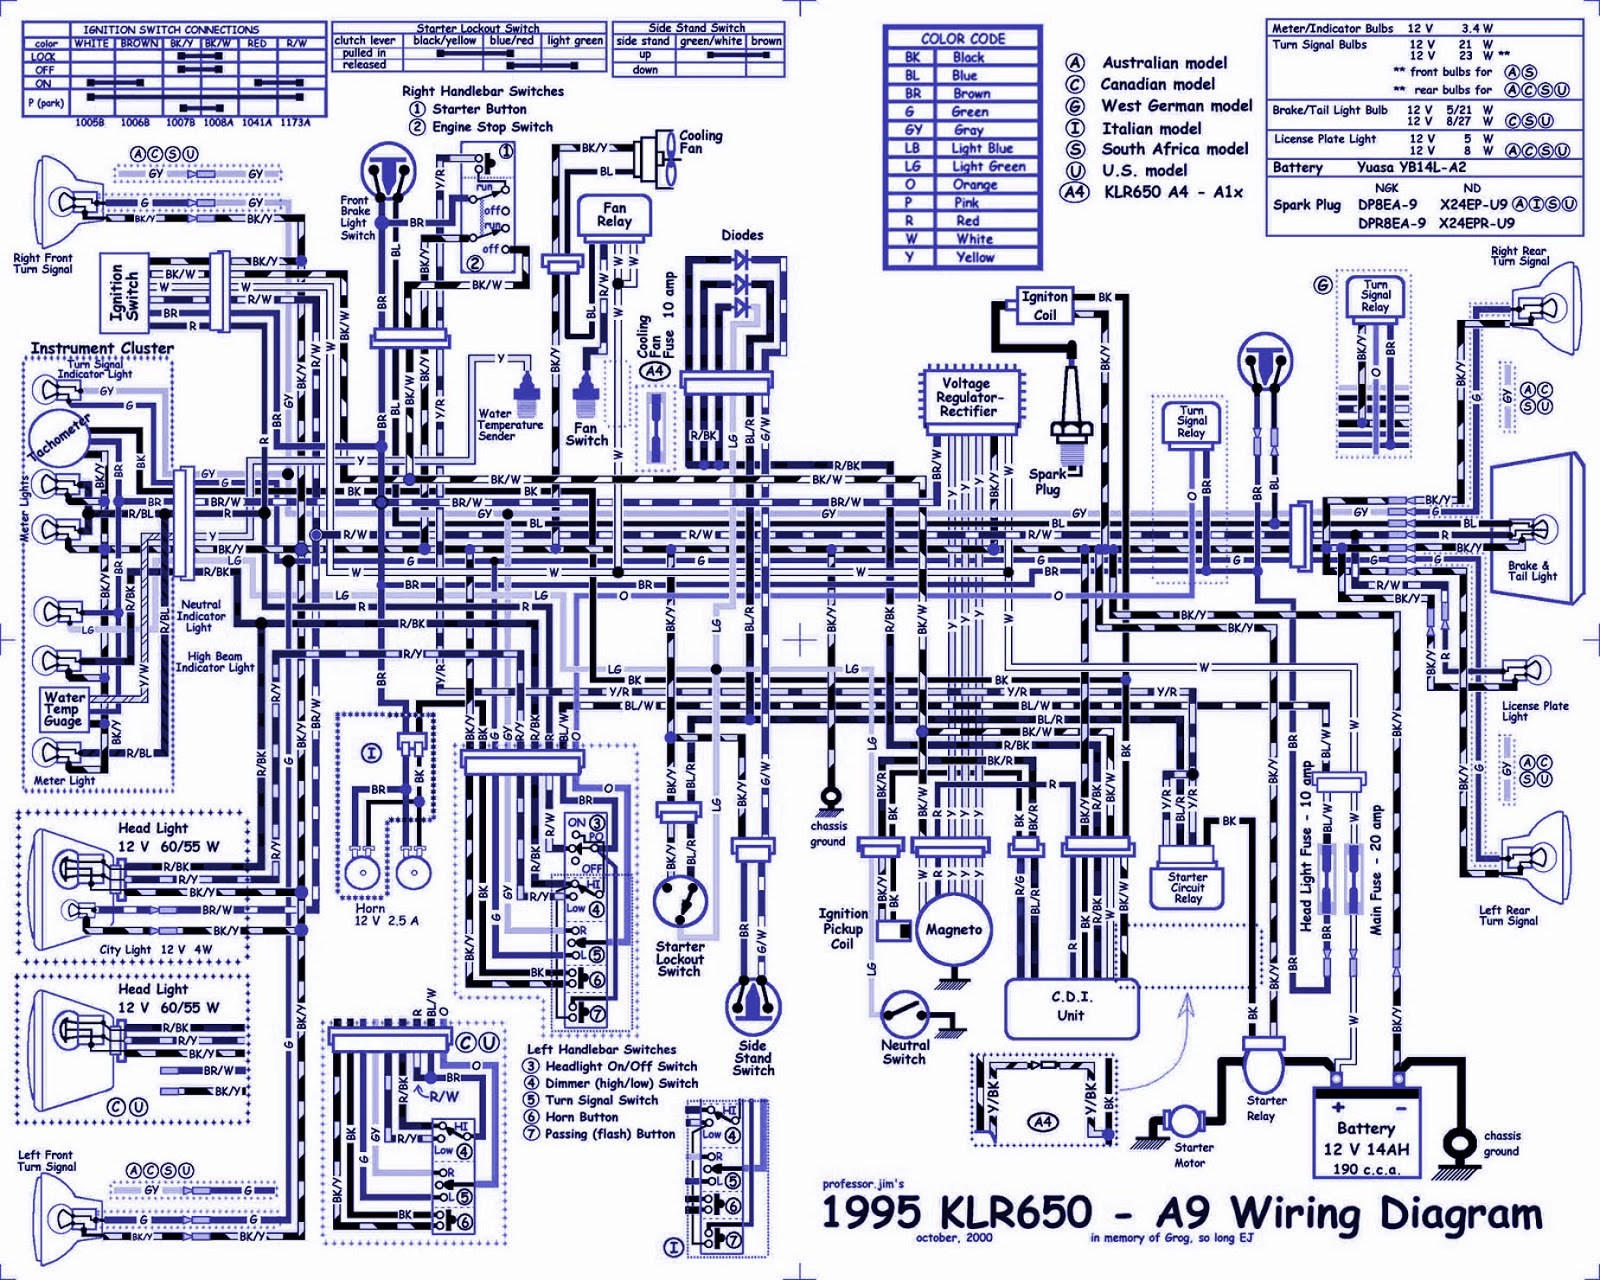 Chevrolet+Monte+Carlo+1974+Electrical+Wiring+Diagram diagram argosy 1976 wiring wiring diagrams collection  at gsmportal.co